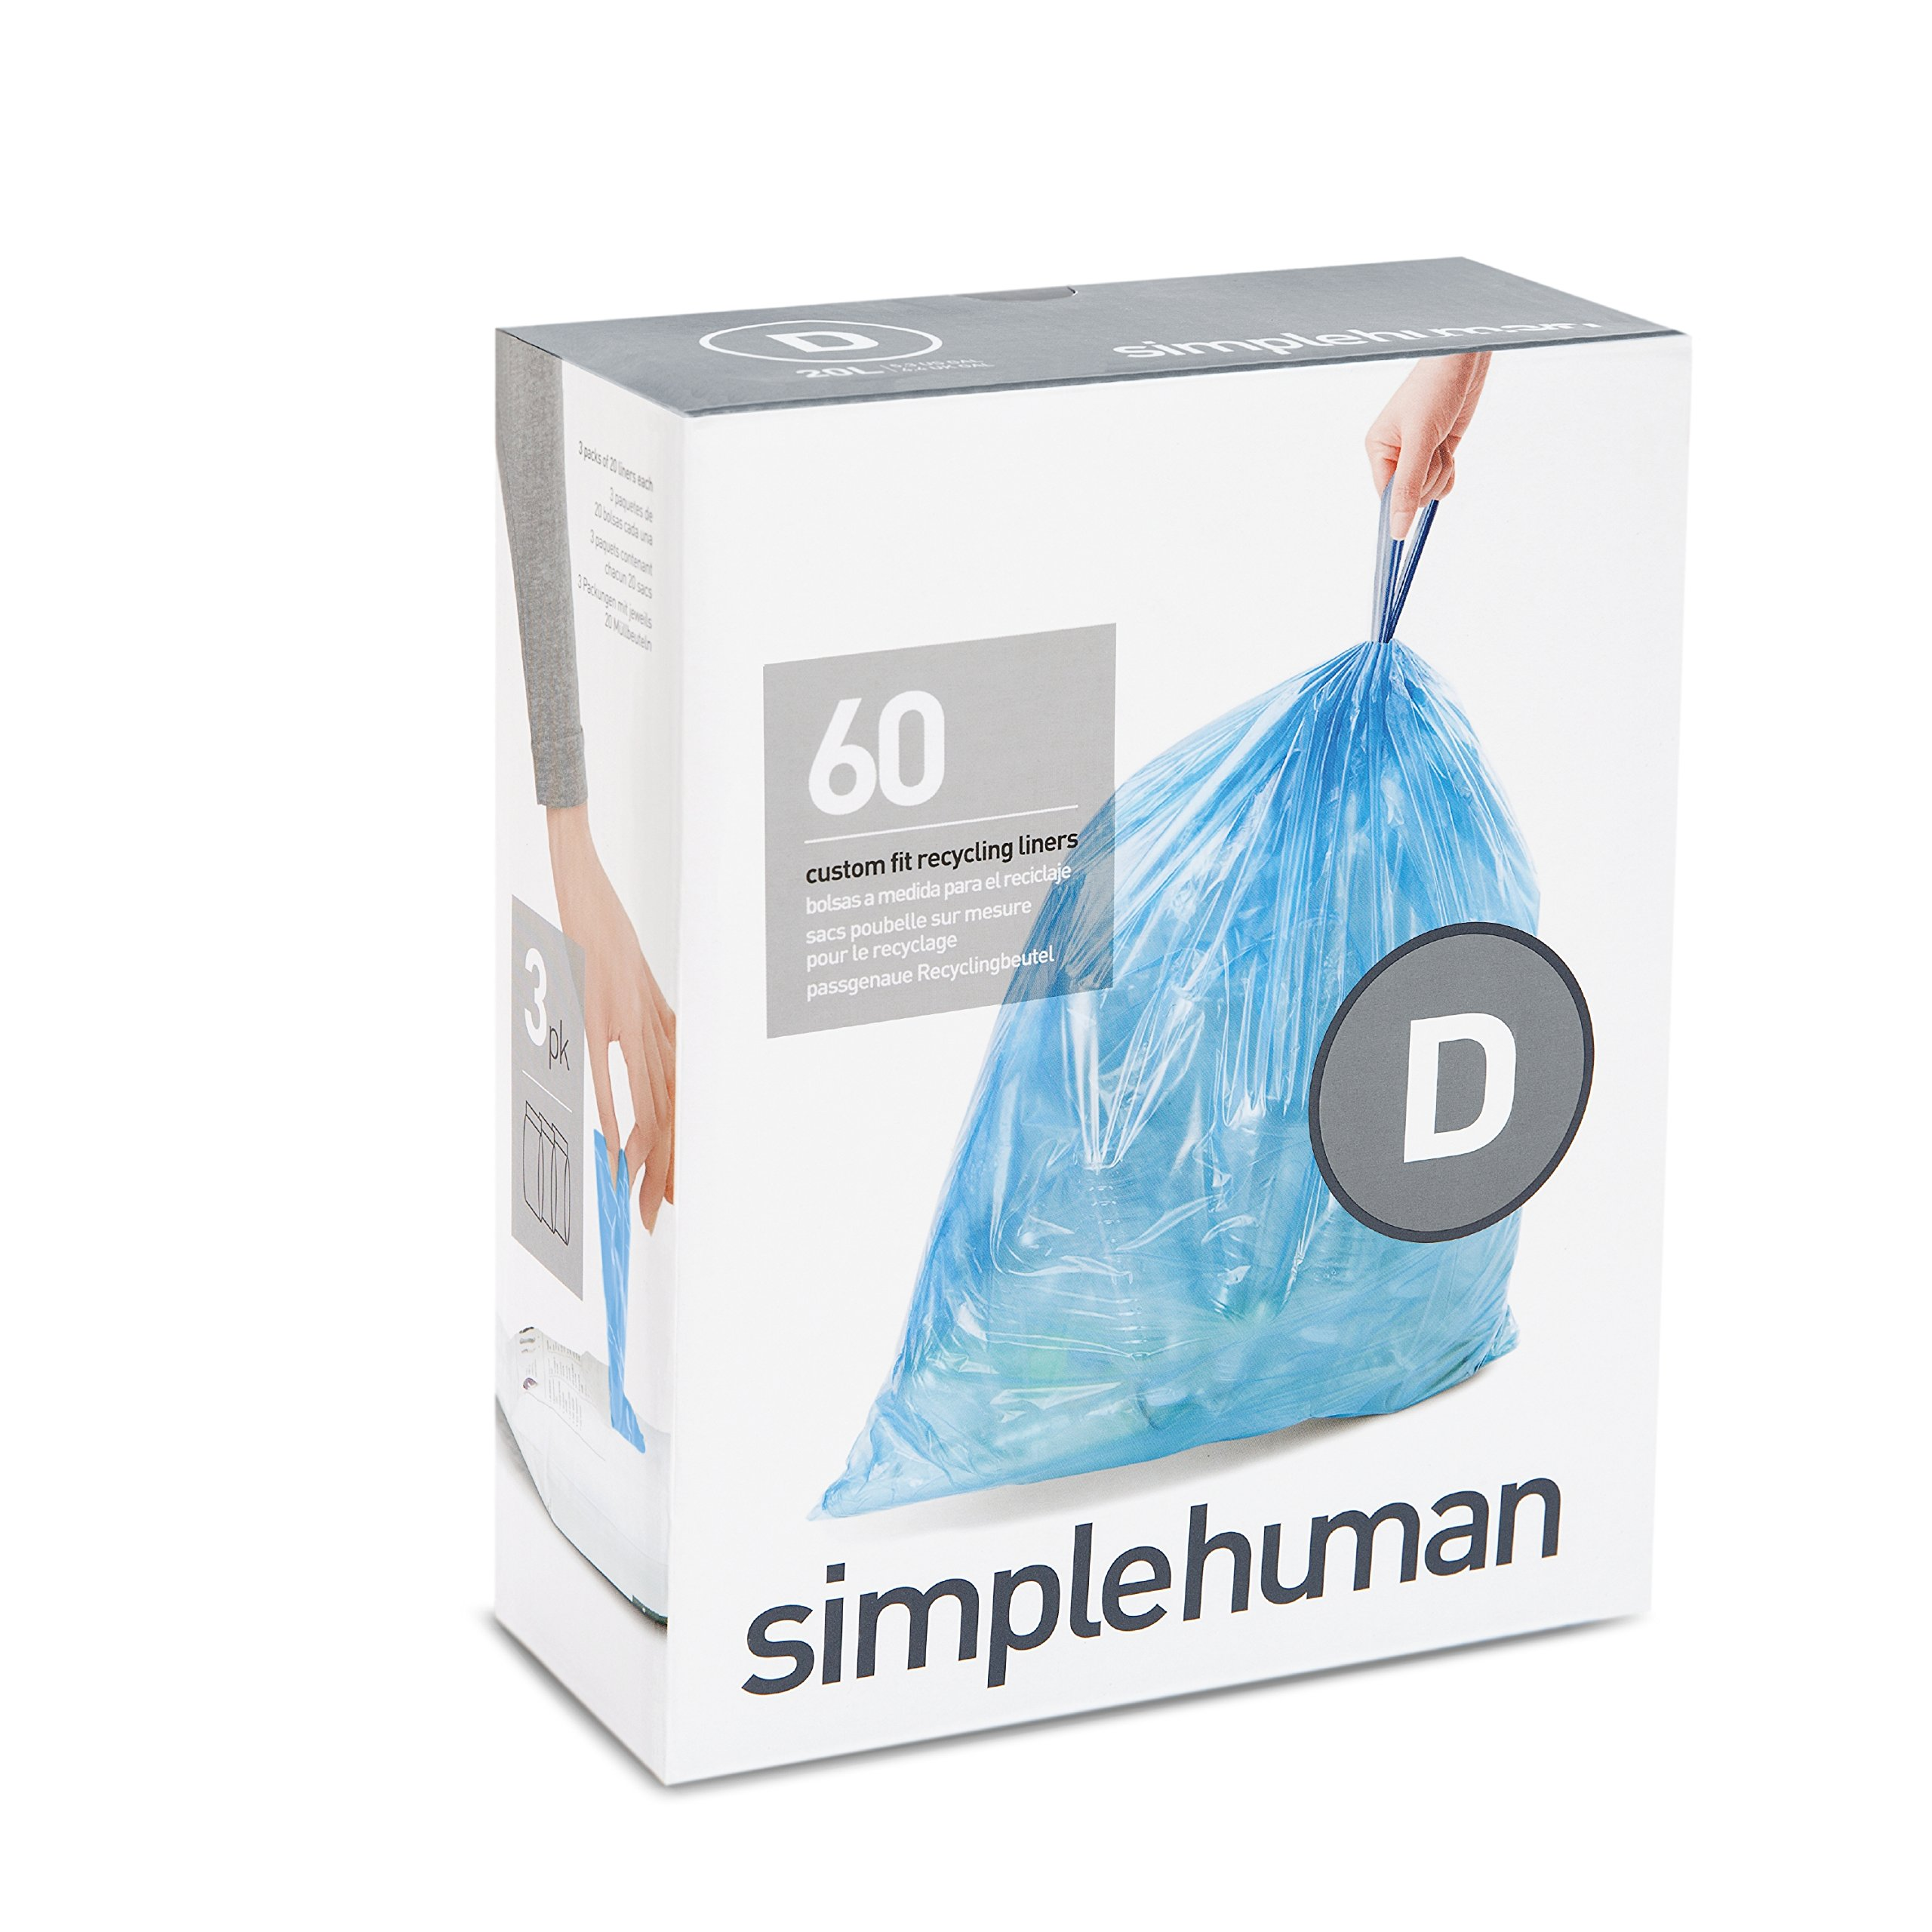 simplehuman code D custom fit recycling liners, 3 refill packs (60 liners), Code D recycling - 20L / 5.2 Gallon, Blue by simplehuman